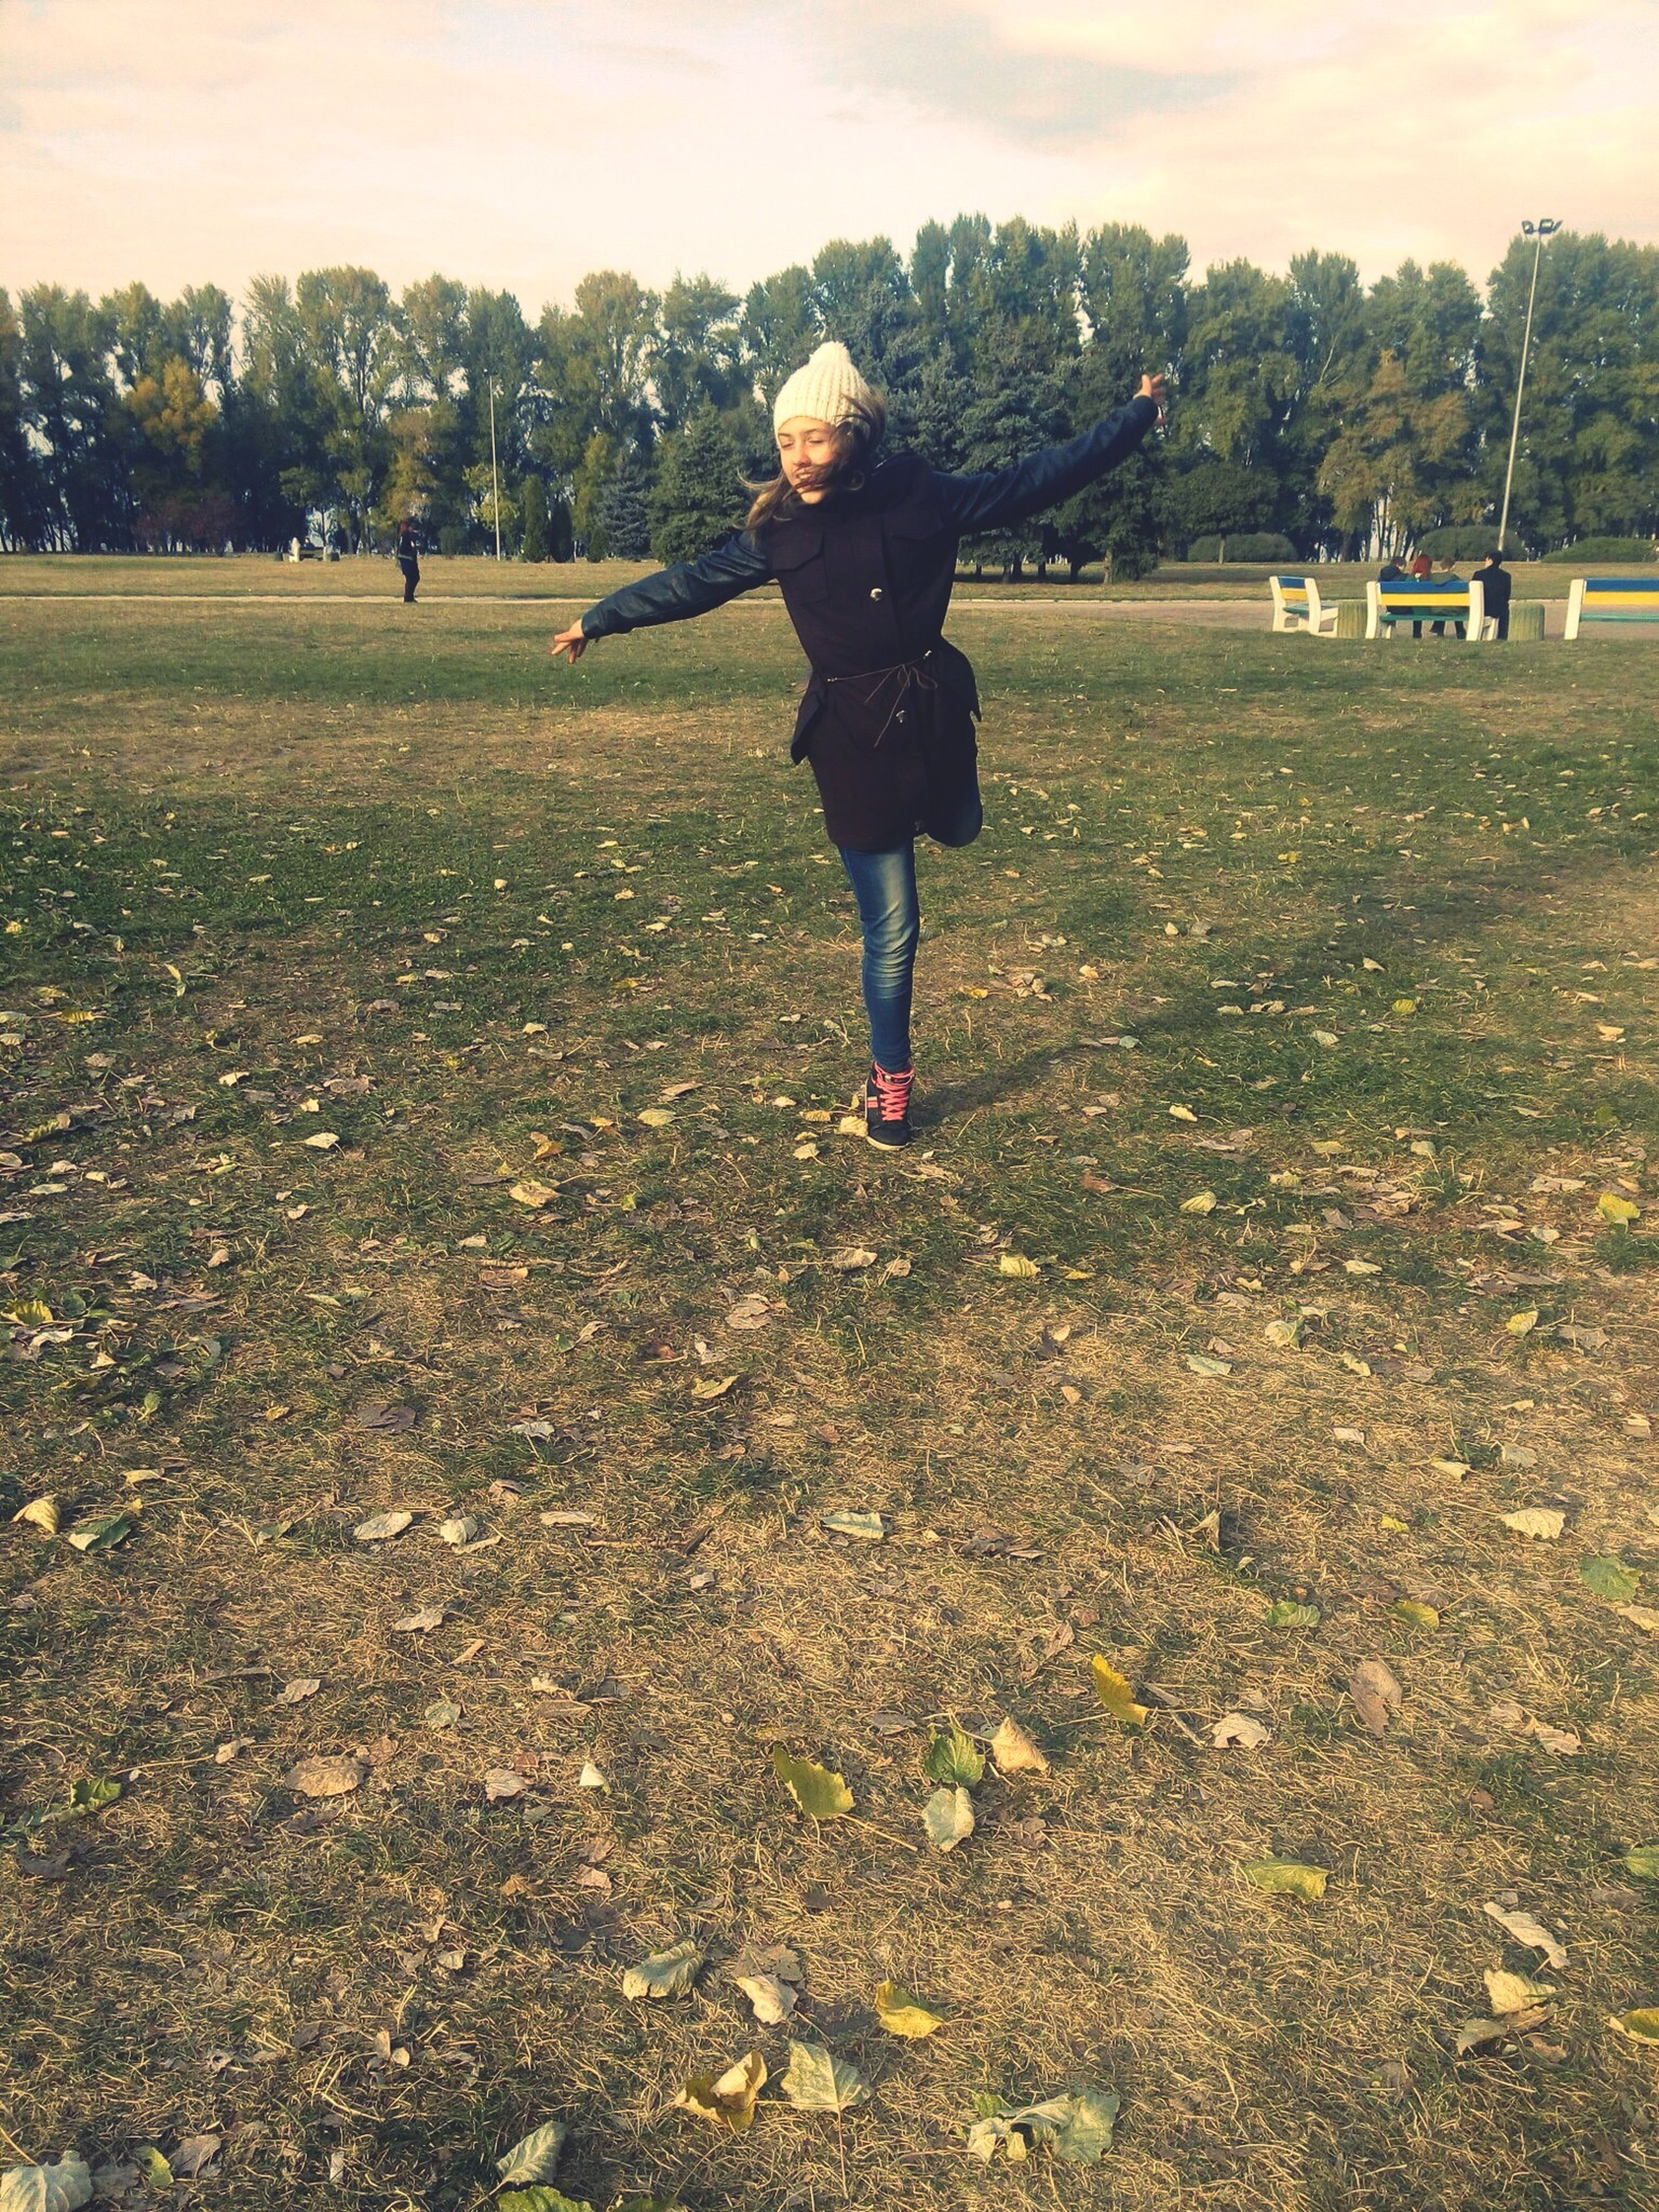 full length, lifestyles, leisure activity, casual clothing, standing, tree, field, person, childhood, rear view, landscape, sky, girls, park - man made space, young adult, walking, elementary age, nature